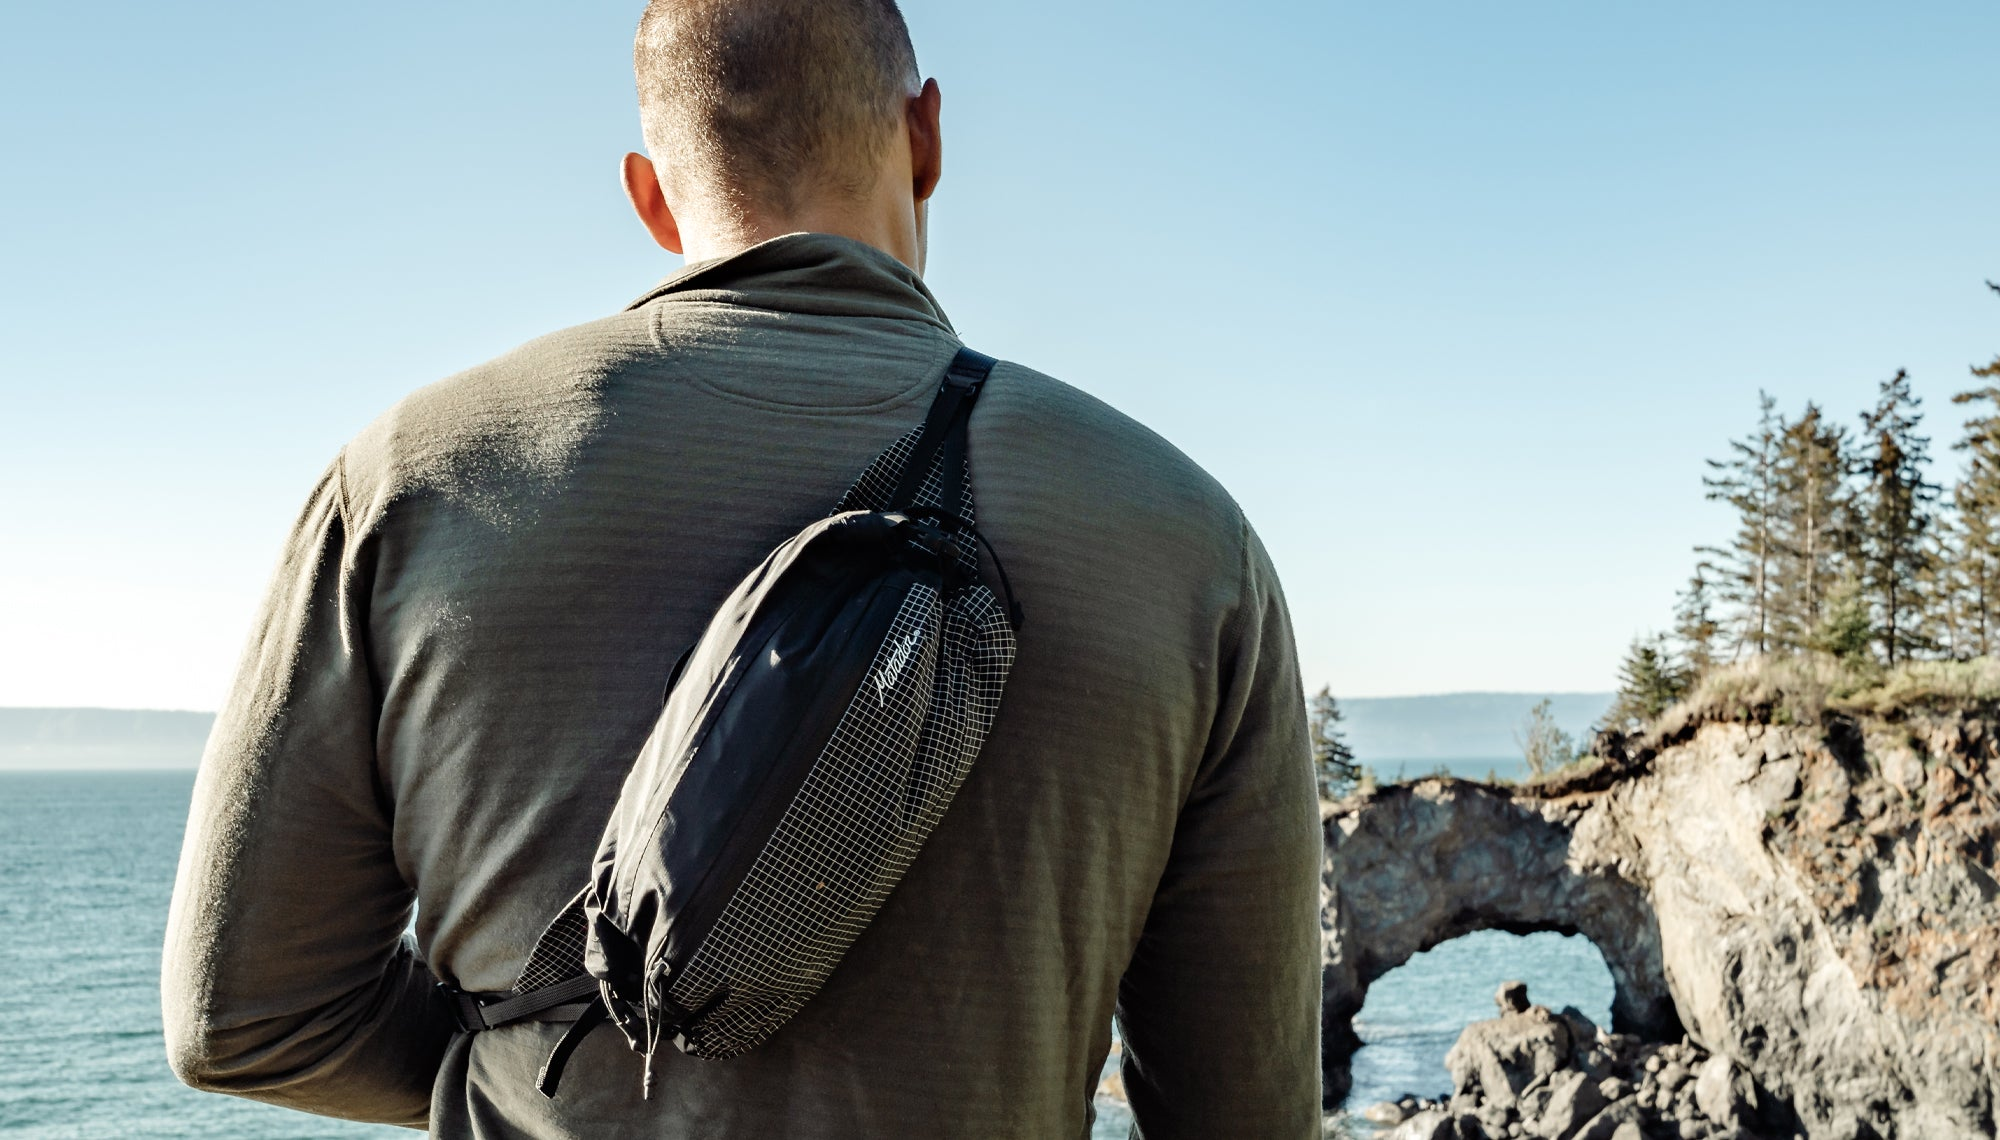 Man looking out at ocean wearing crossbody hip pack